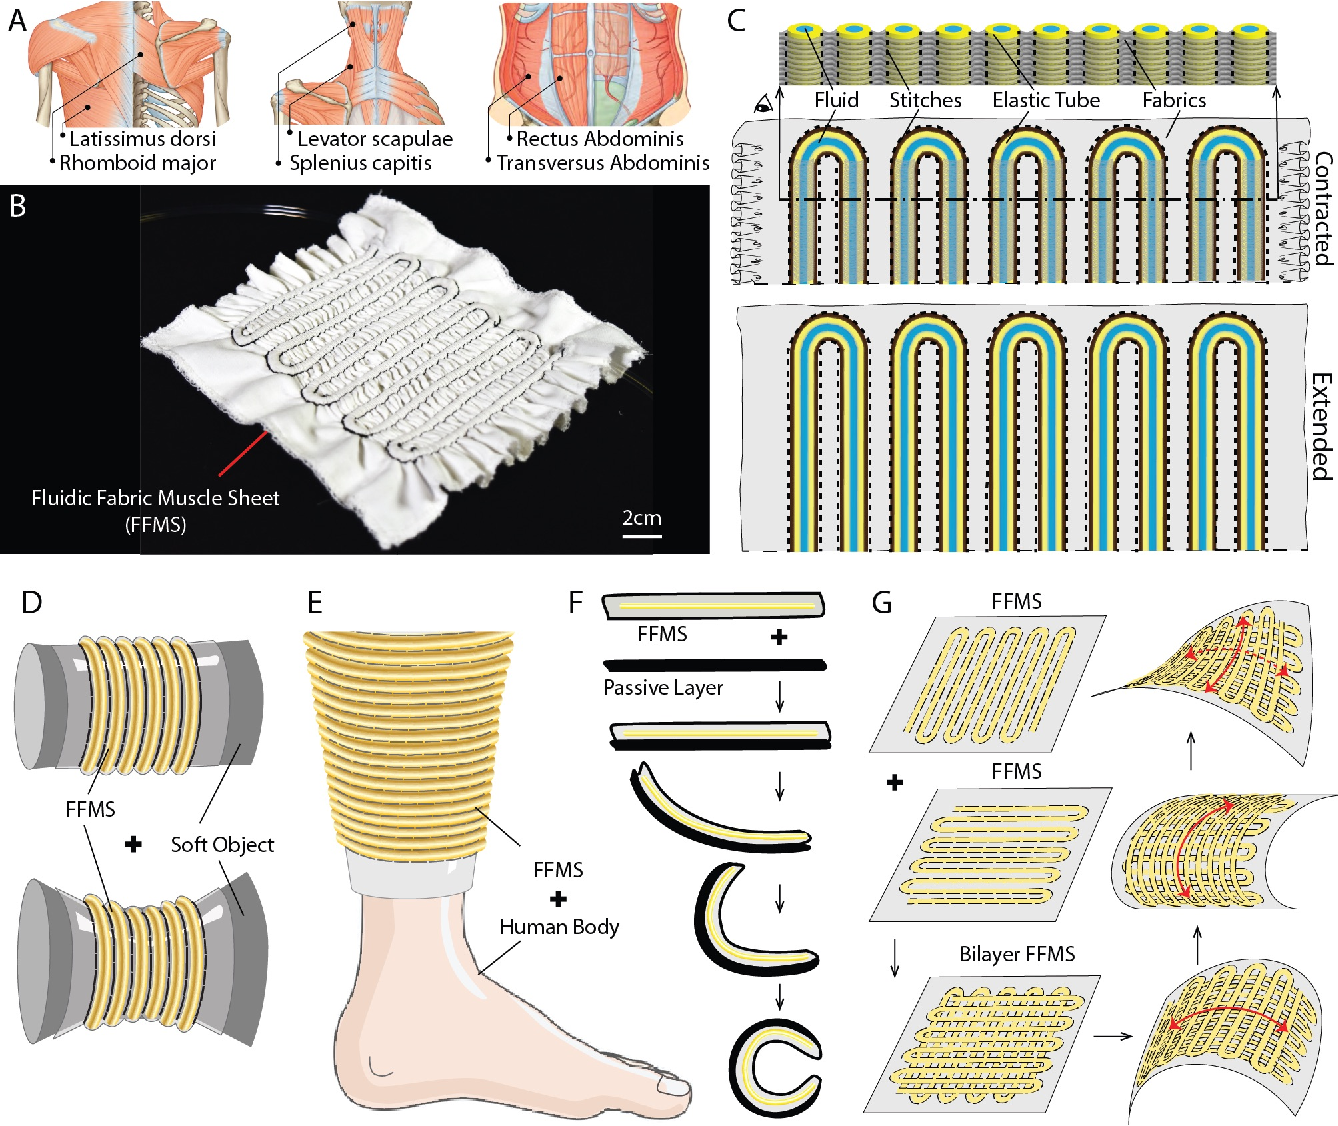 「Fluidic Fabric Muscle Sheets for Wearable and Soft Robotics」の画像検索結果